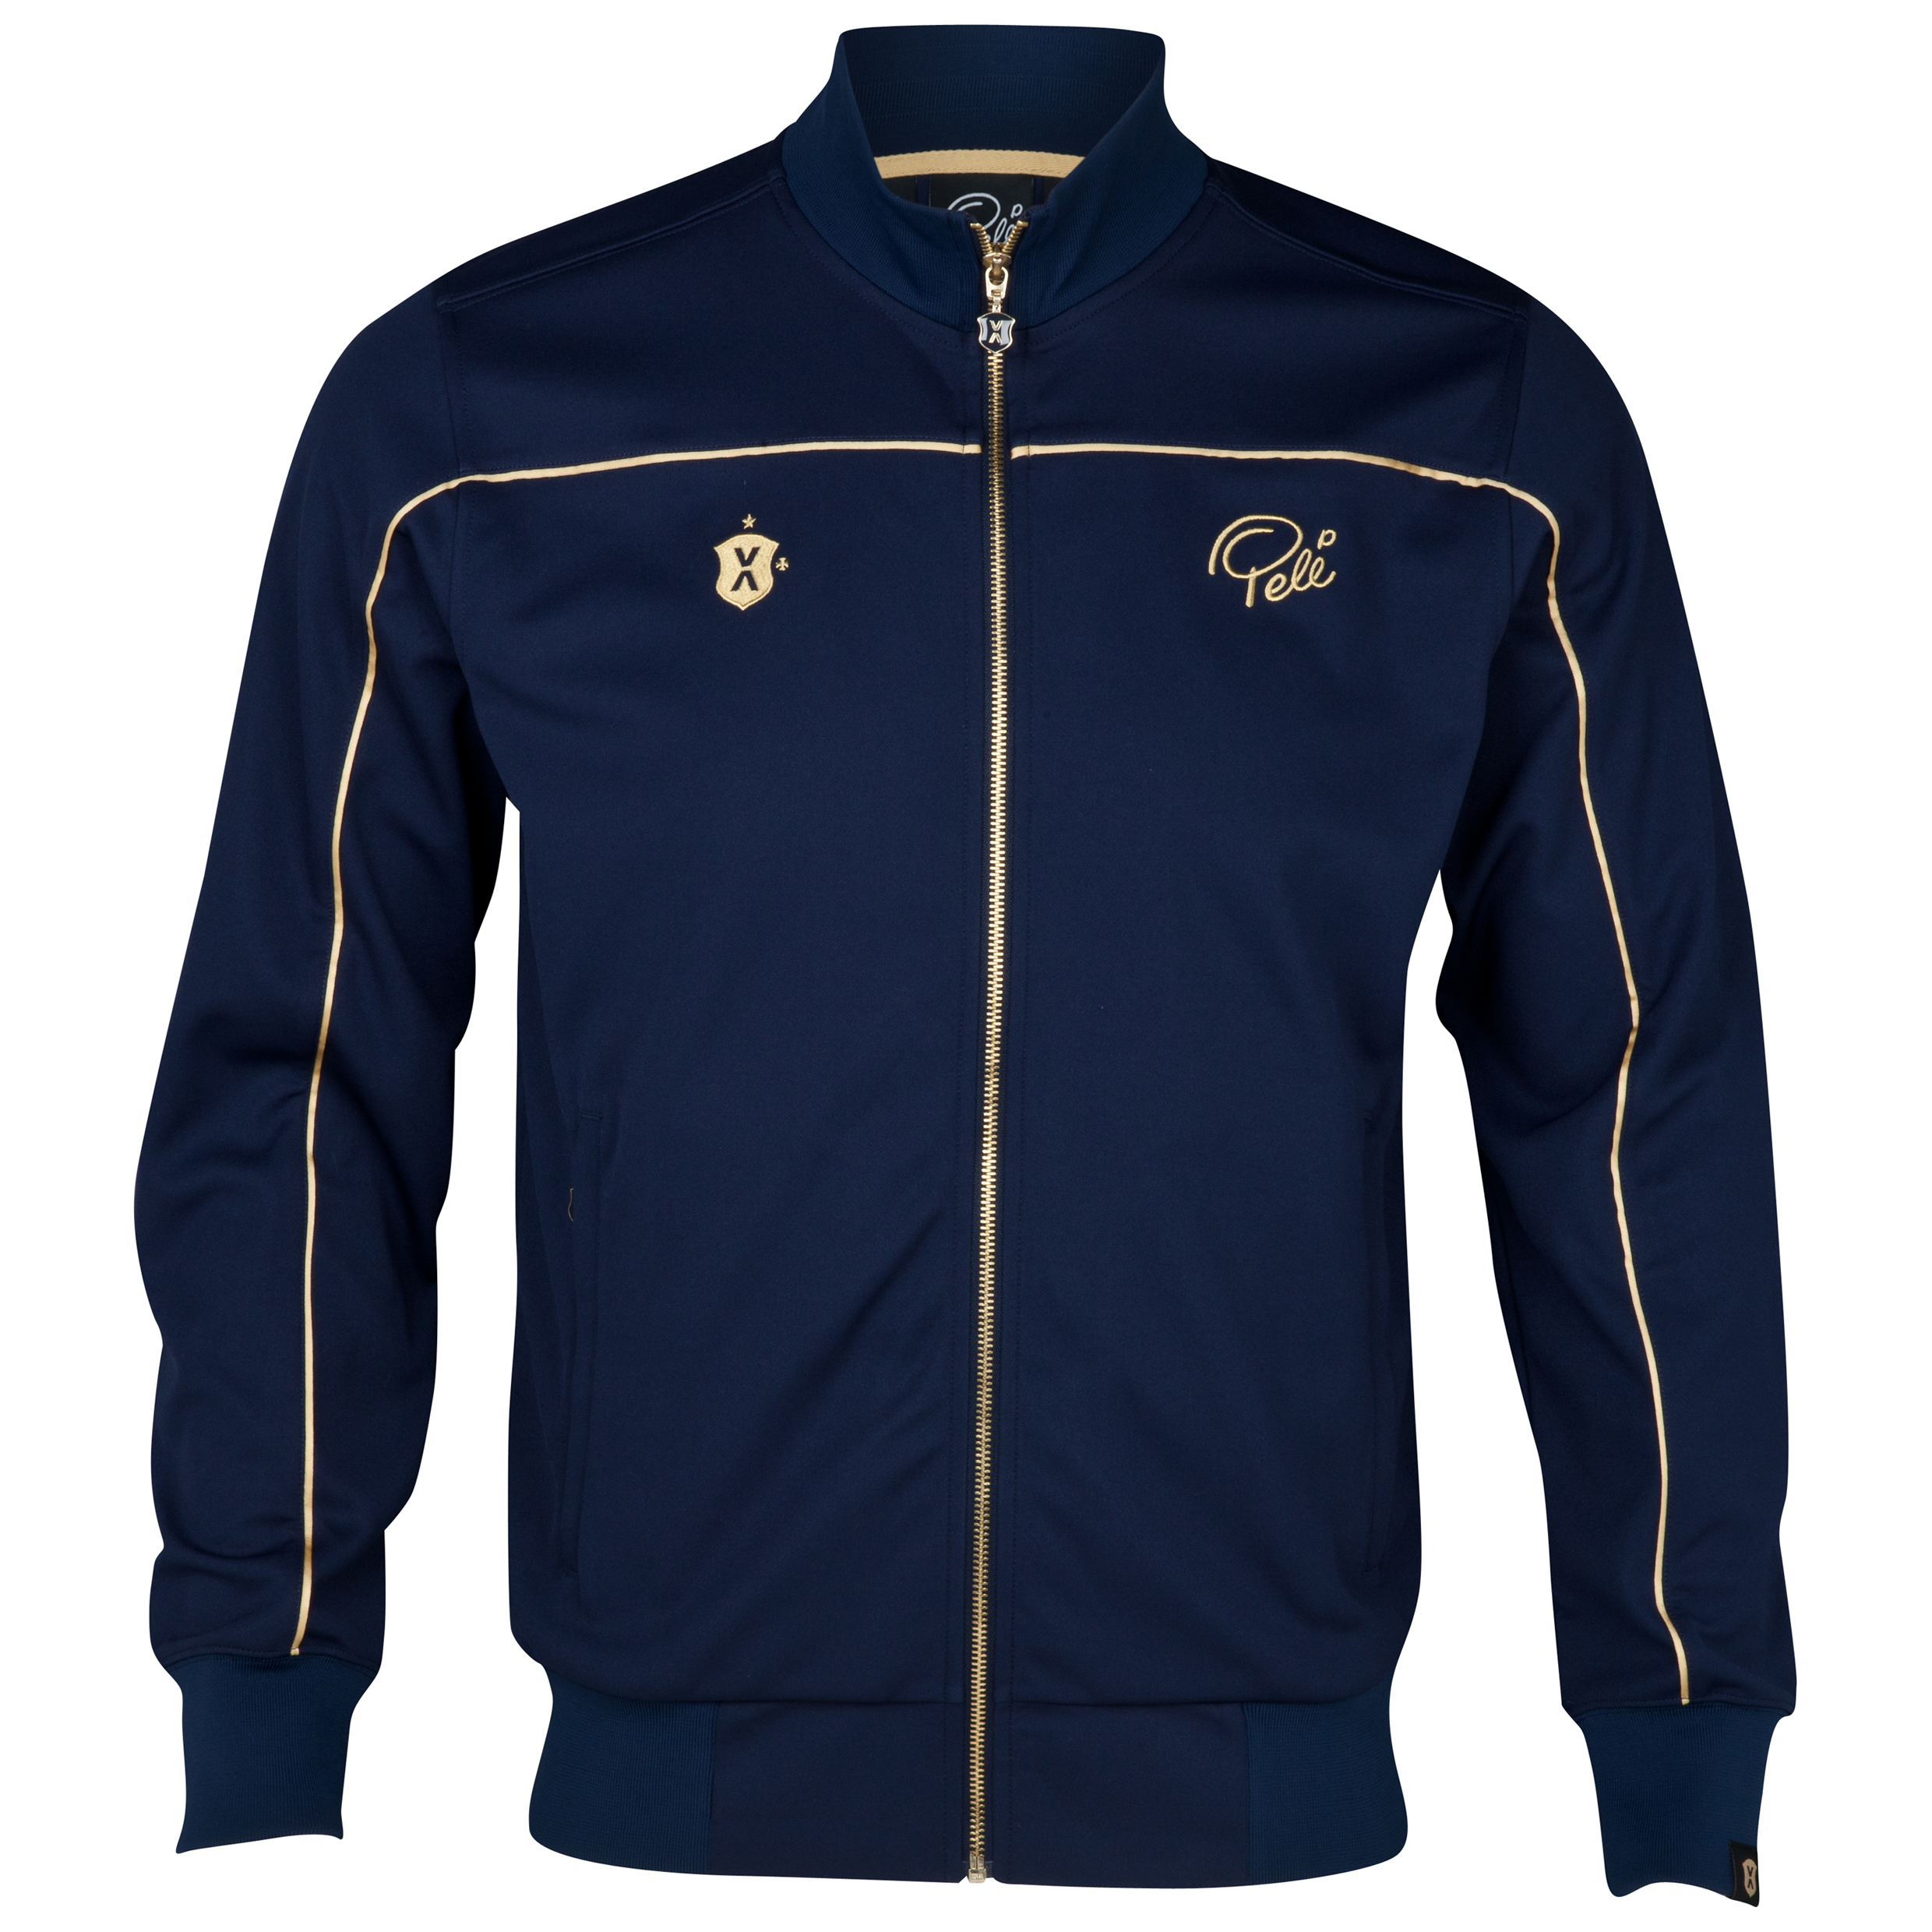 Pele Sports Street Track Jacket - Navy